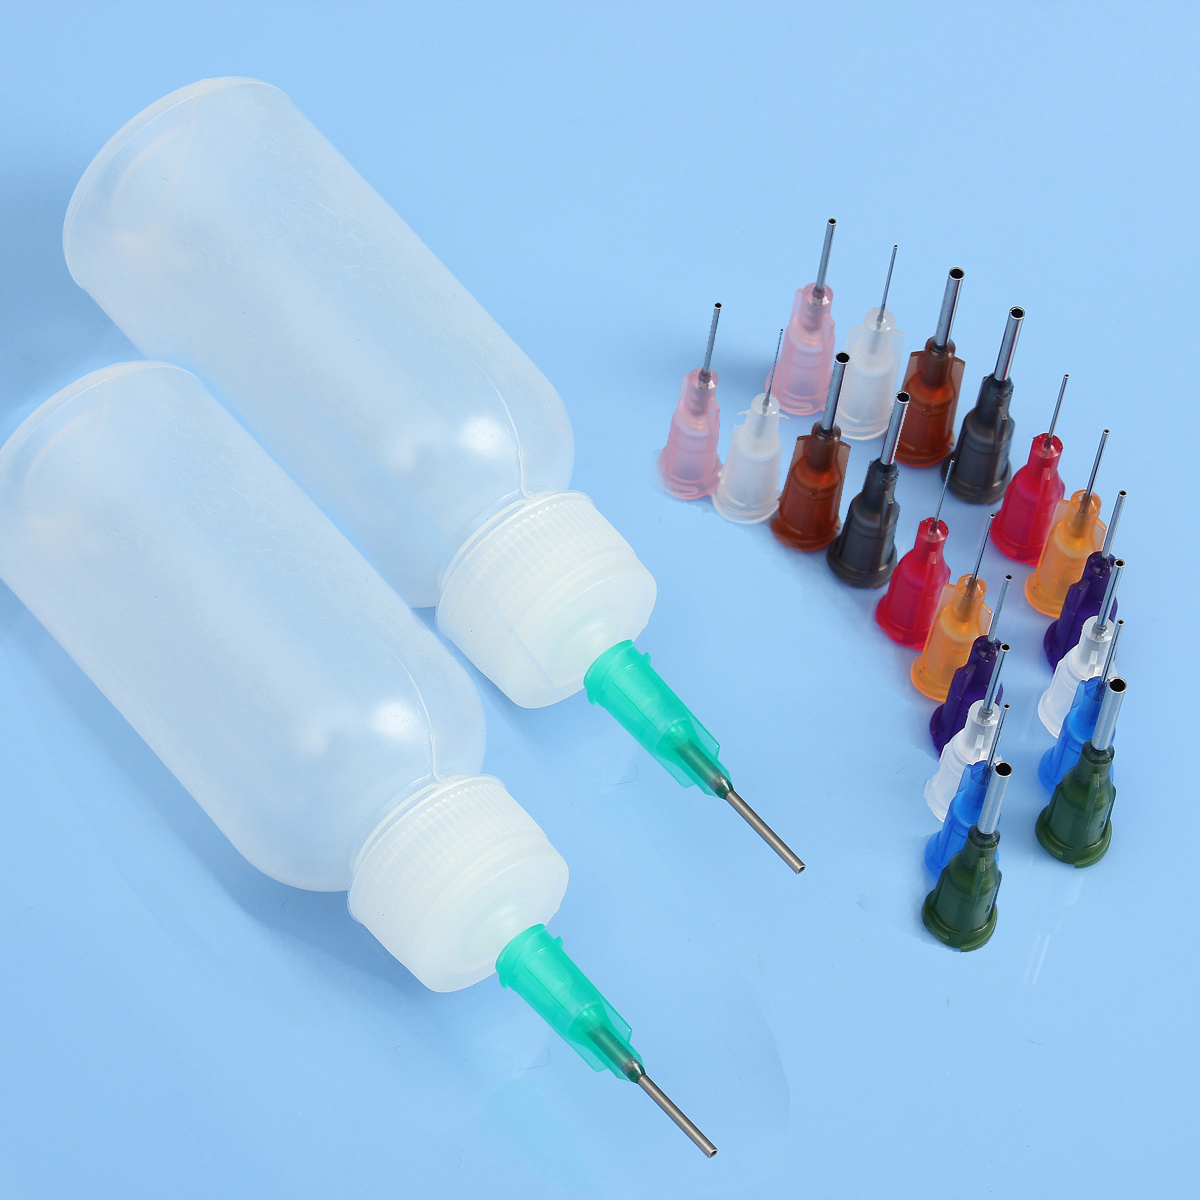 FORGELO 30ml Transparent Polyethylene Needle Dispenser Dispensing Bottle For Rosin Solder Flux Paste + 11 Needles Tools